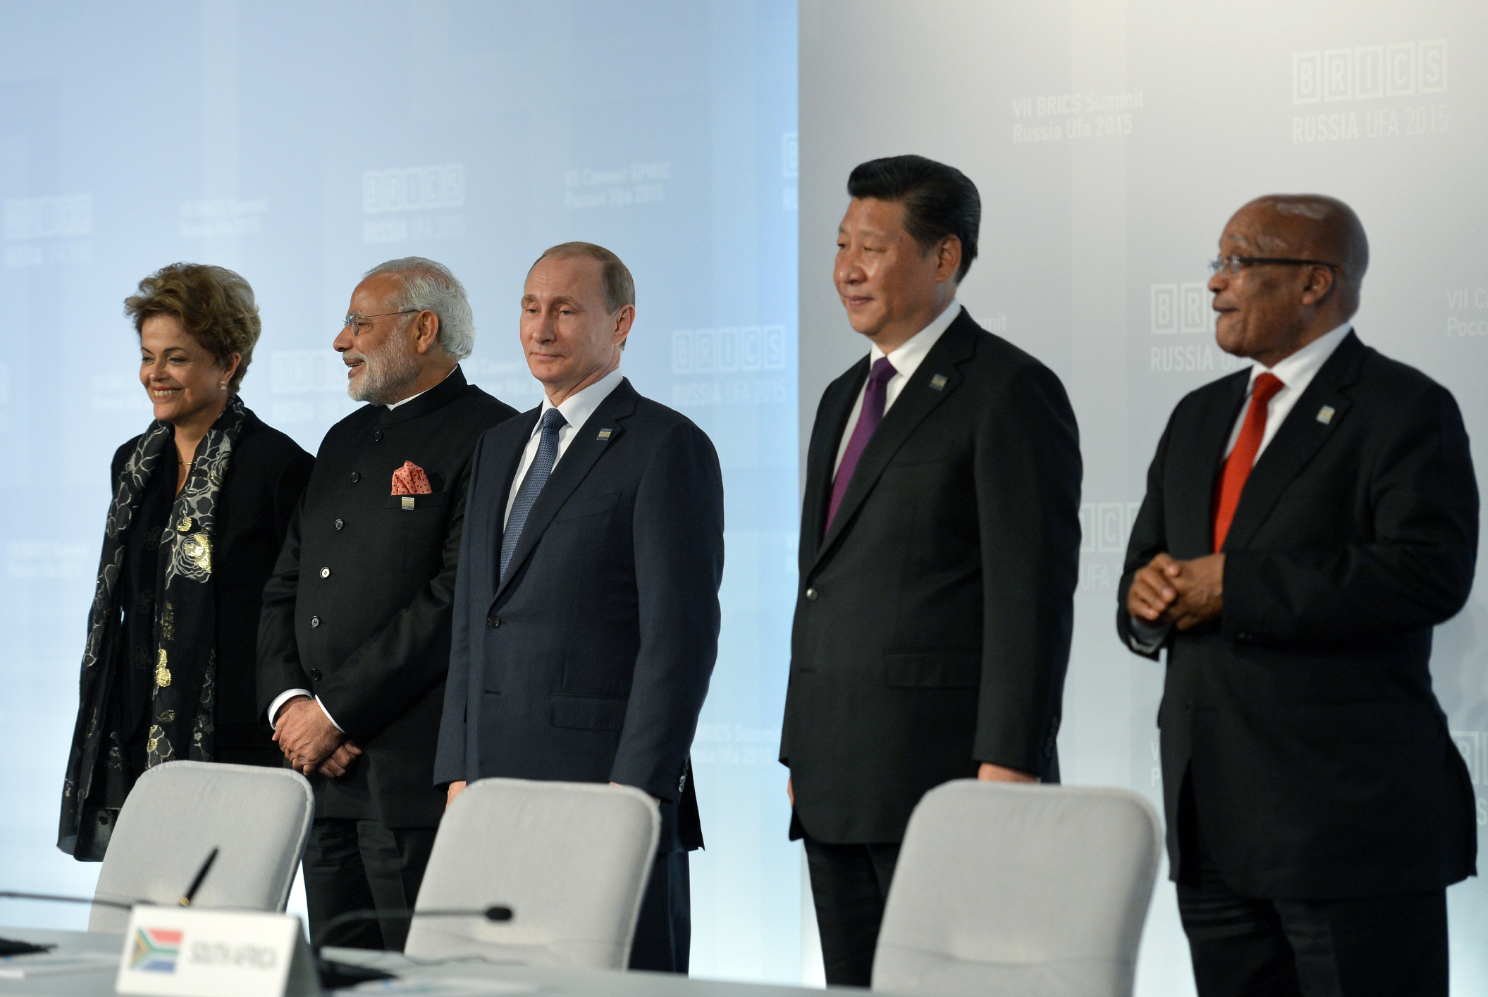 Preparations for the 8th BRICS summit in Goa have begun.